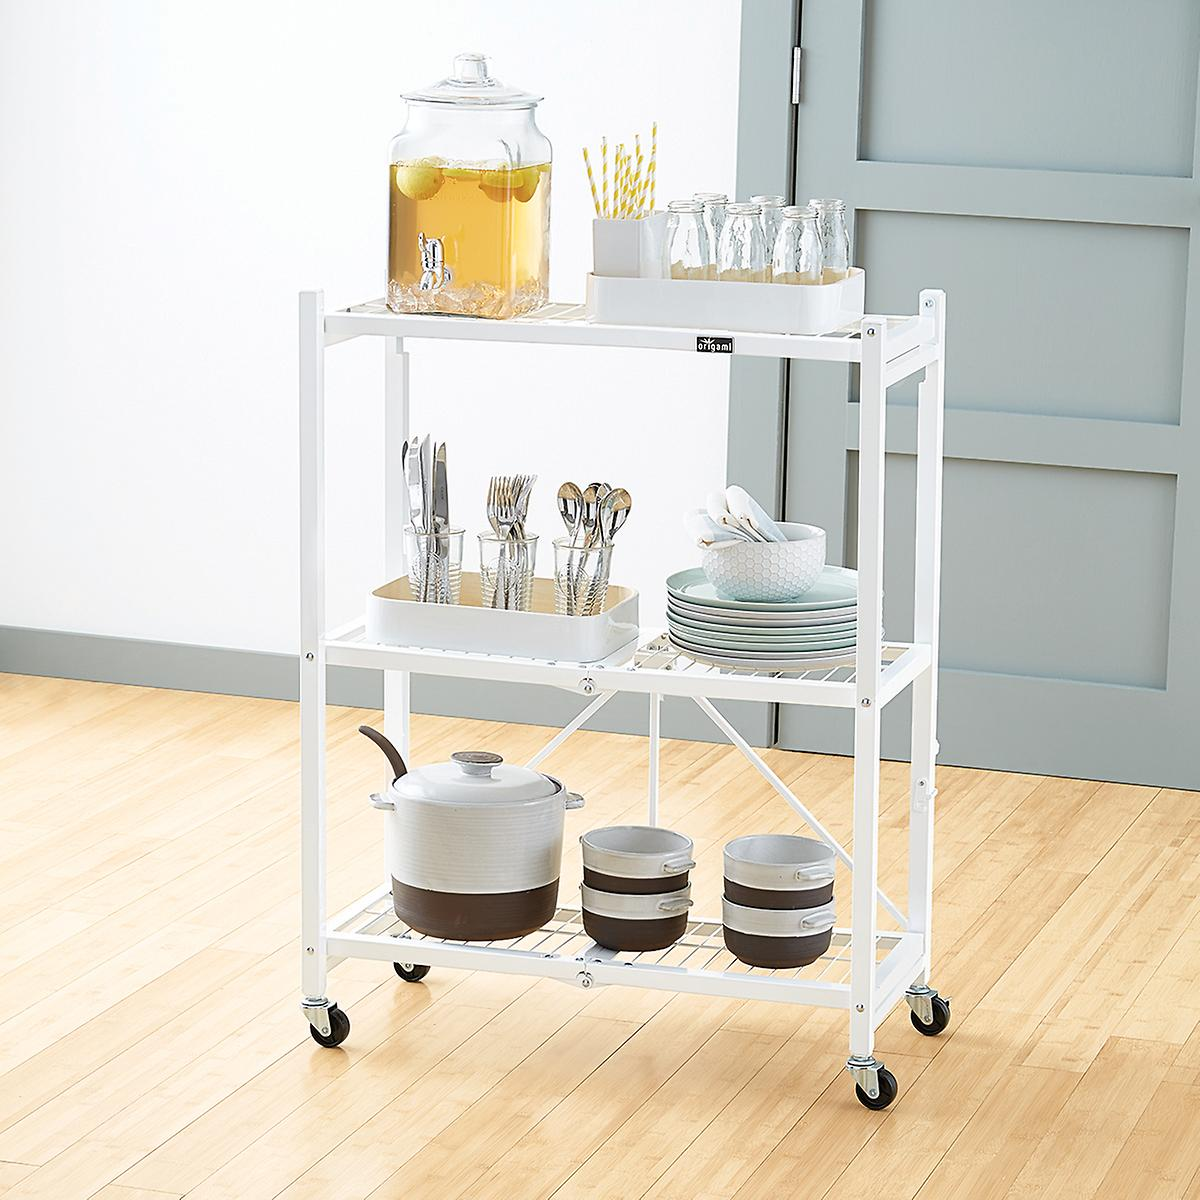 Folding Storage Rack with dishes in kitchen